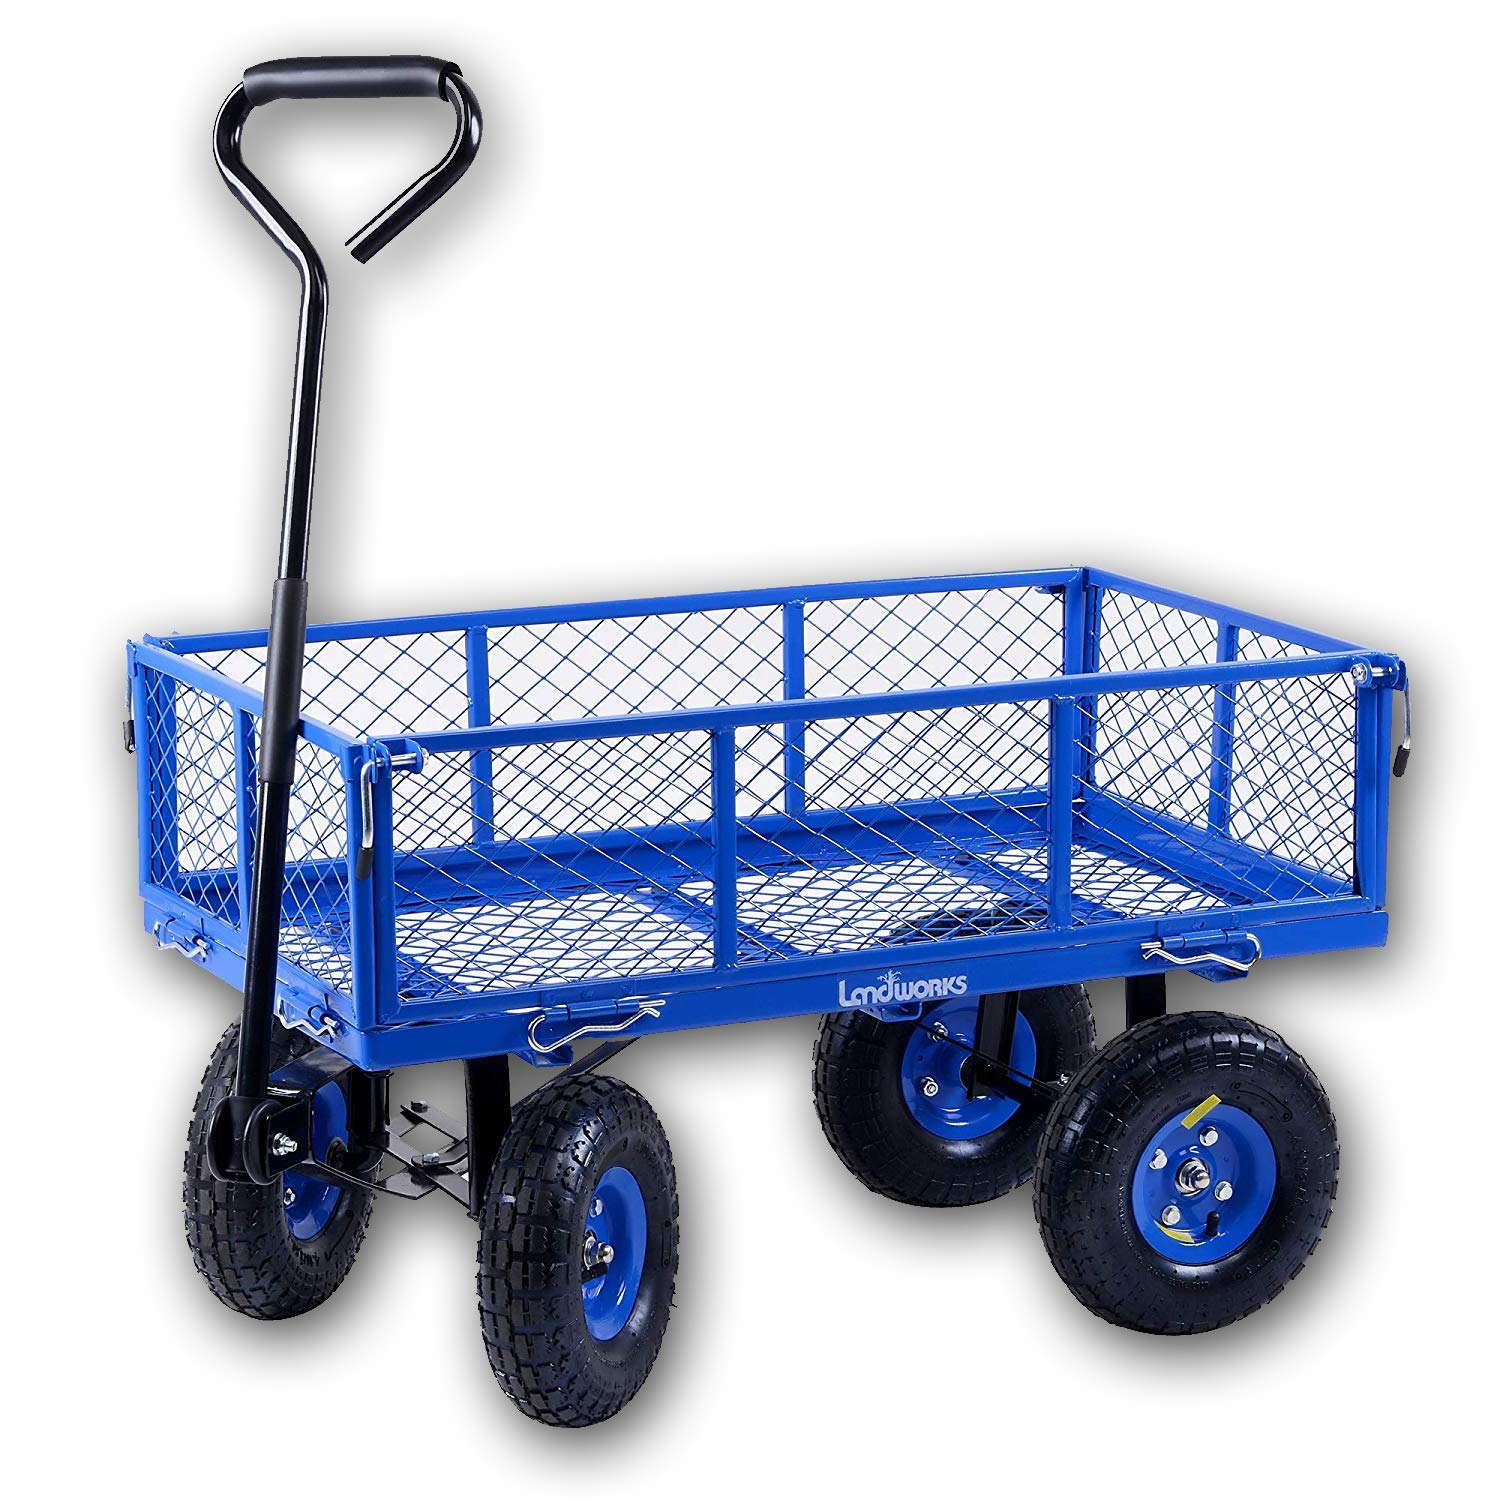 Landworks 2103Q044A Heavy Duty Lawn/Garden Utility Cart/Wagon With Removable Side Meshes, 400 lbs, Blue by Landworks